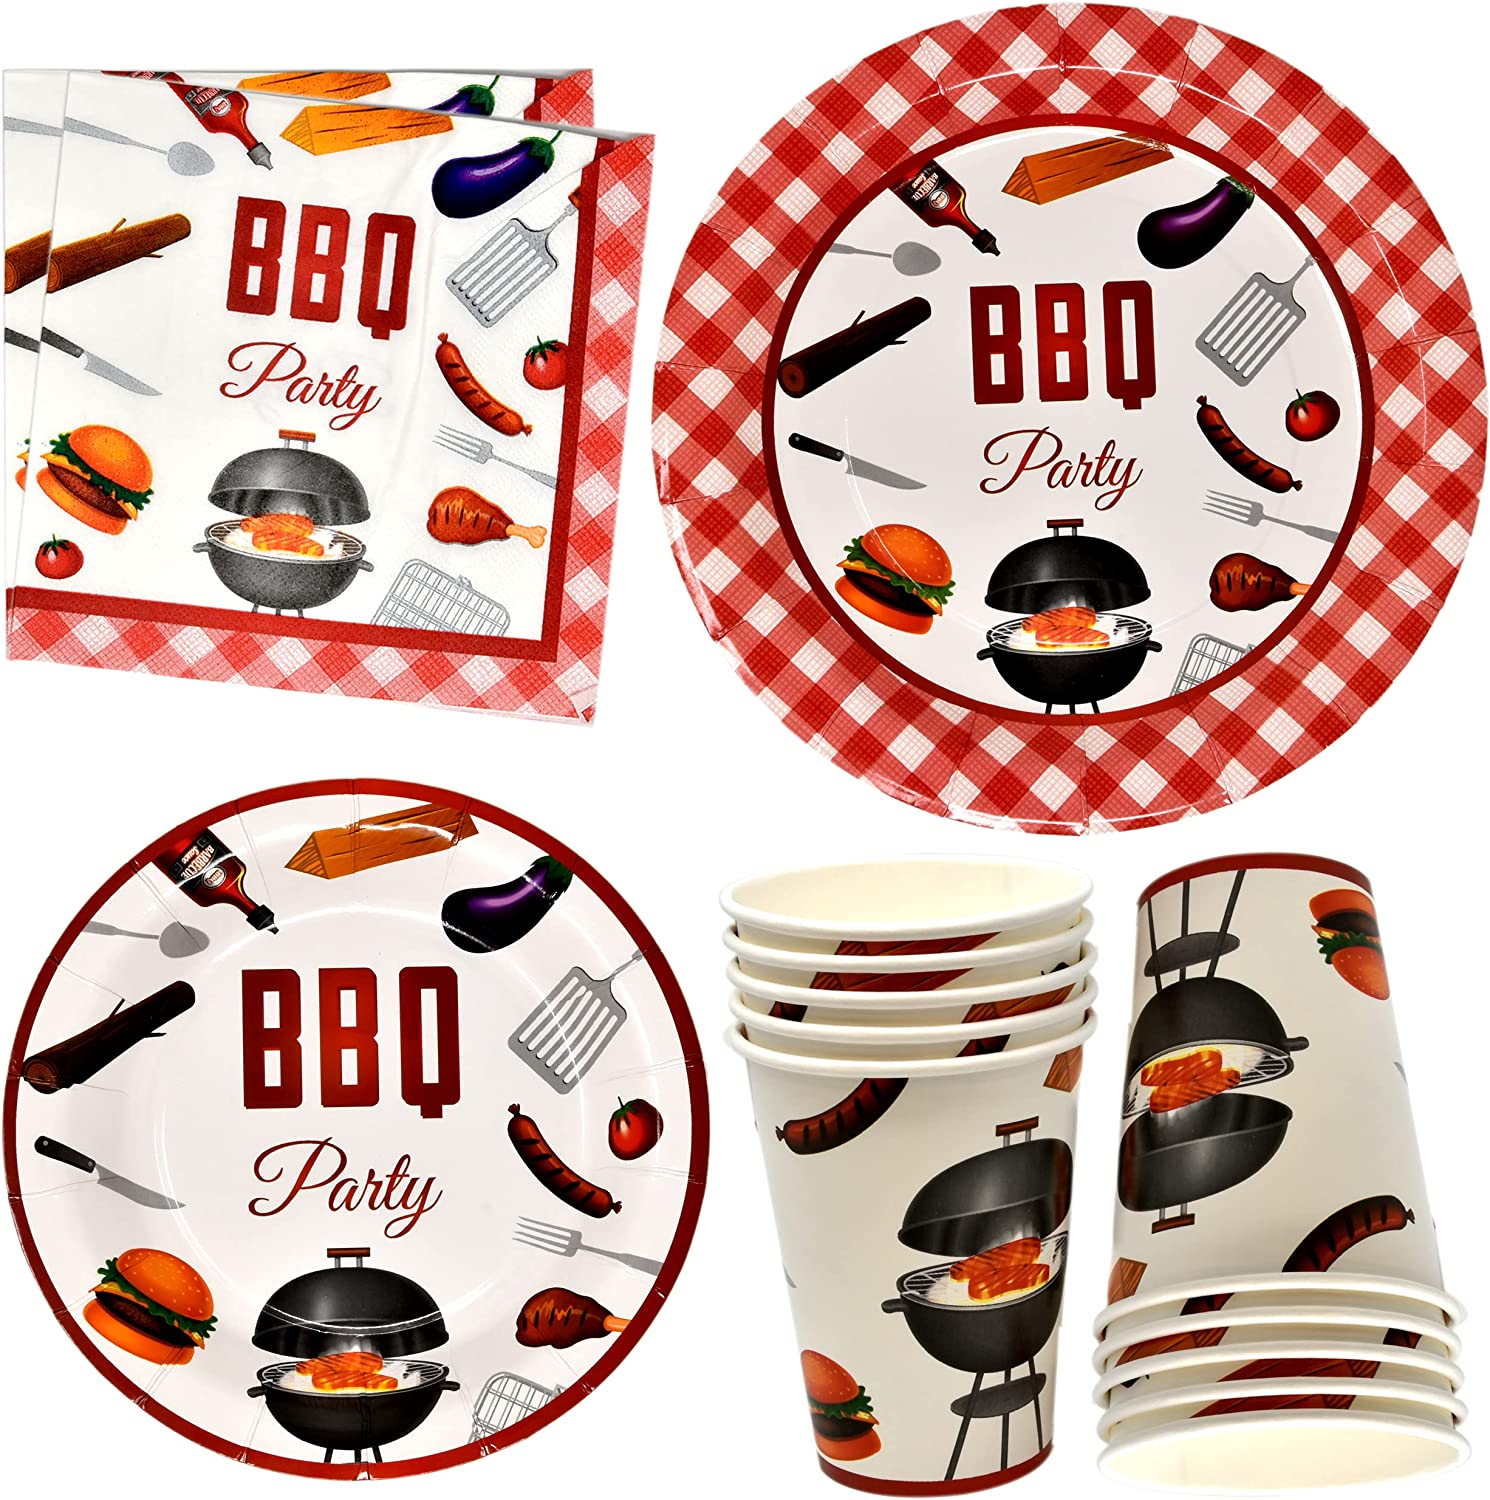 BBQ Picnic Party Supplies Tableware Set 24 9